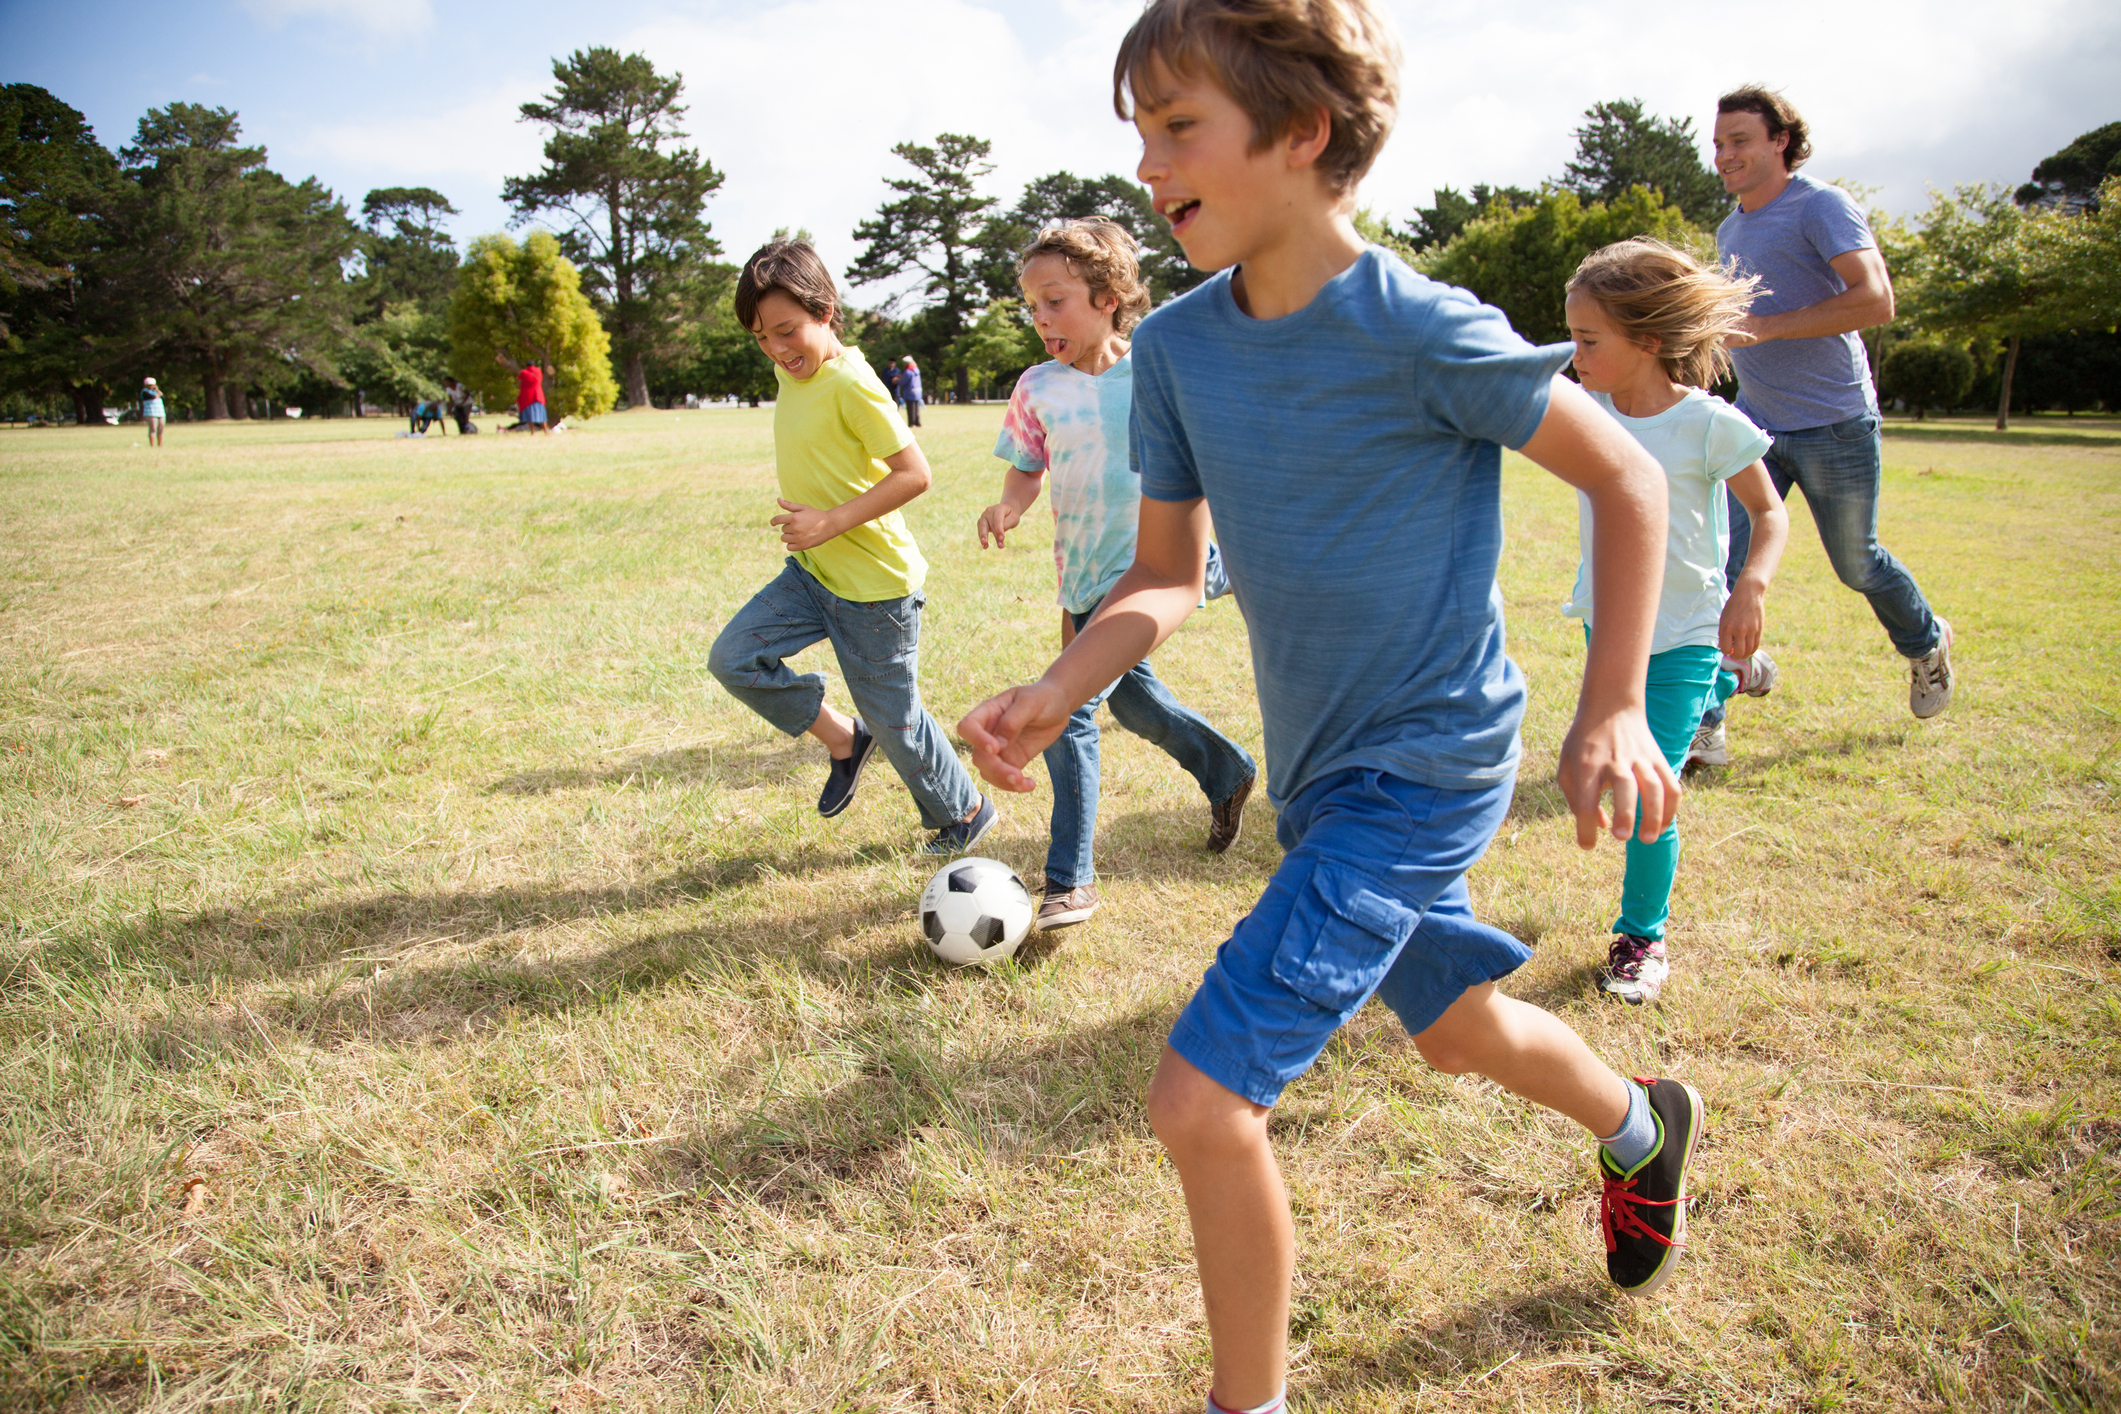 Children, aged 9-10, running together with a soccer ball in a park